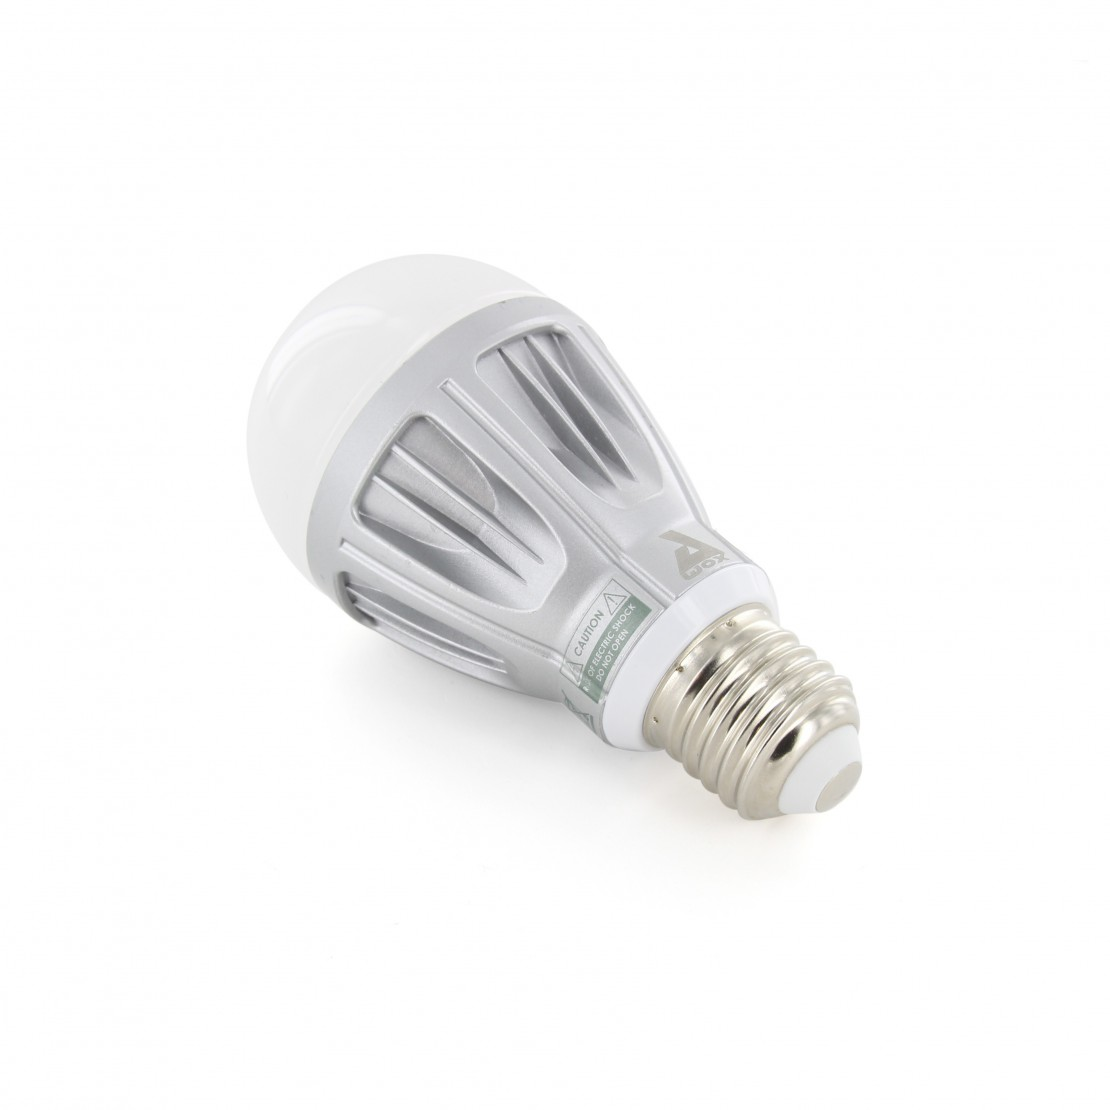 SmartLIGHT - smartlamp, E27, wit, Bluetooth